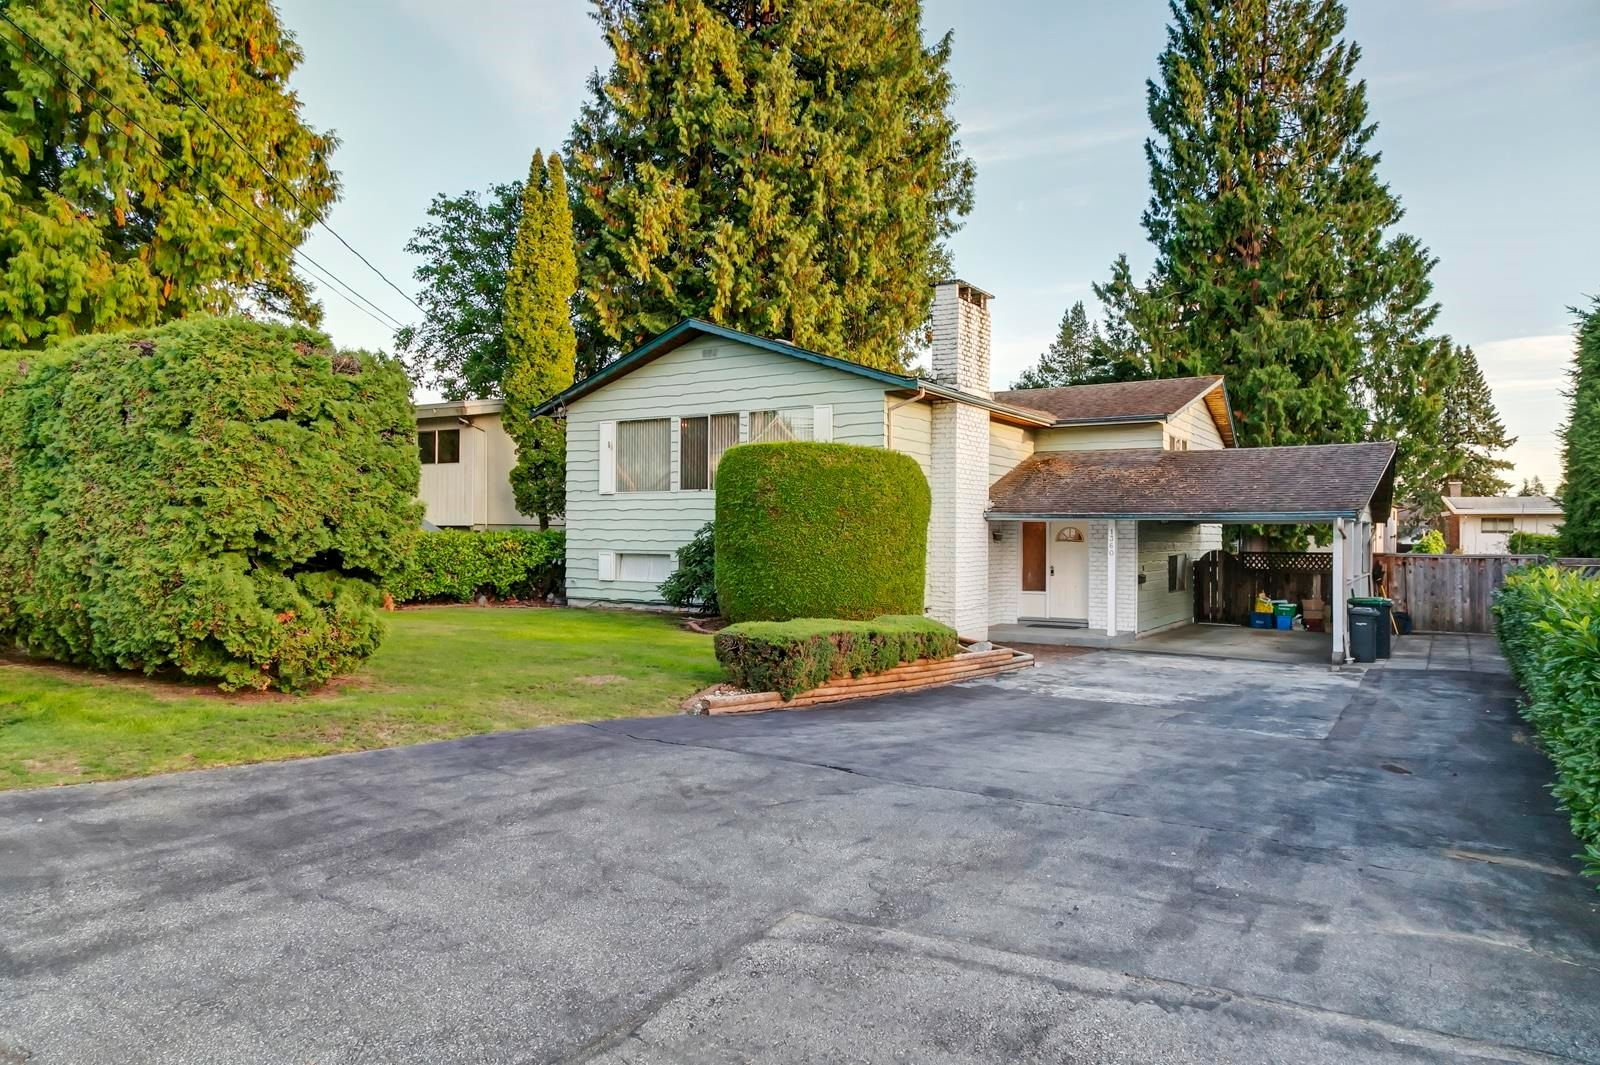 Main Photo: 1360 GROVER Avenue in Coquitlam: Central Coquitlam House for sale : MLS®# R2616064